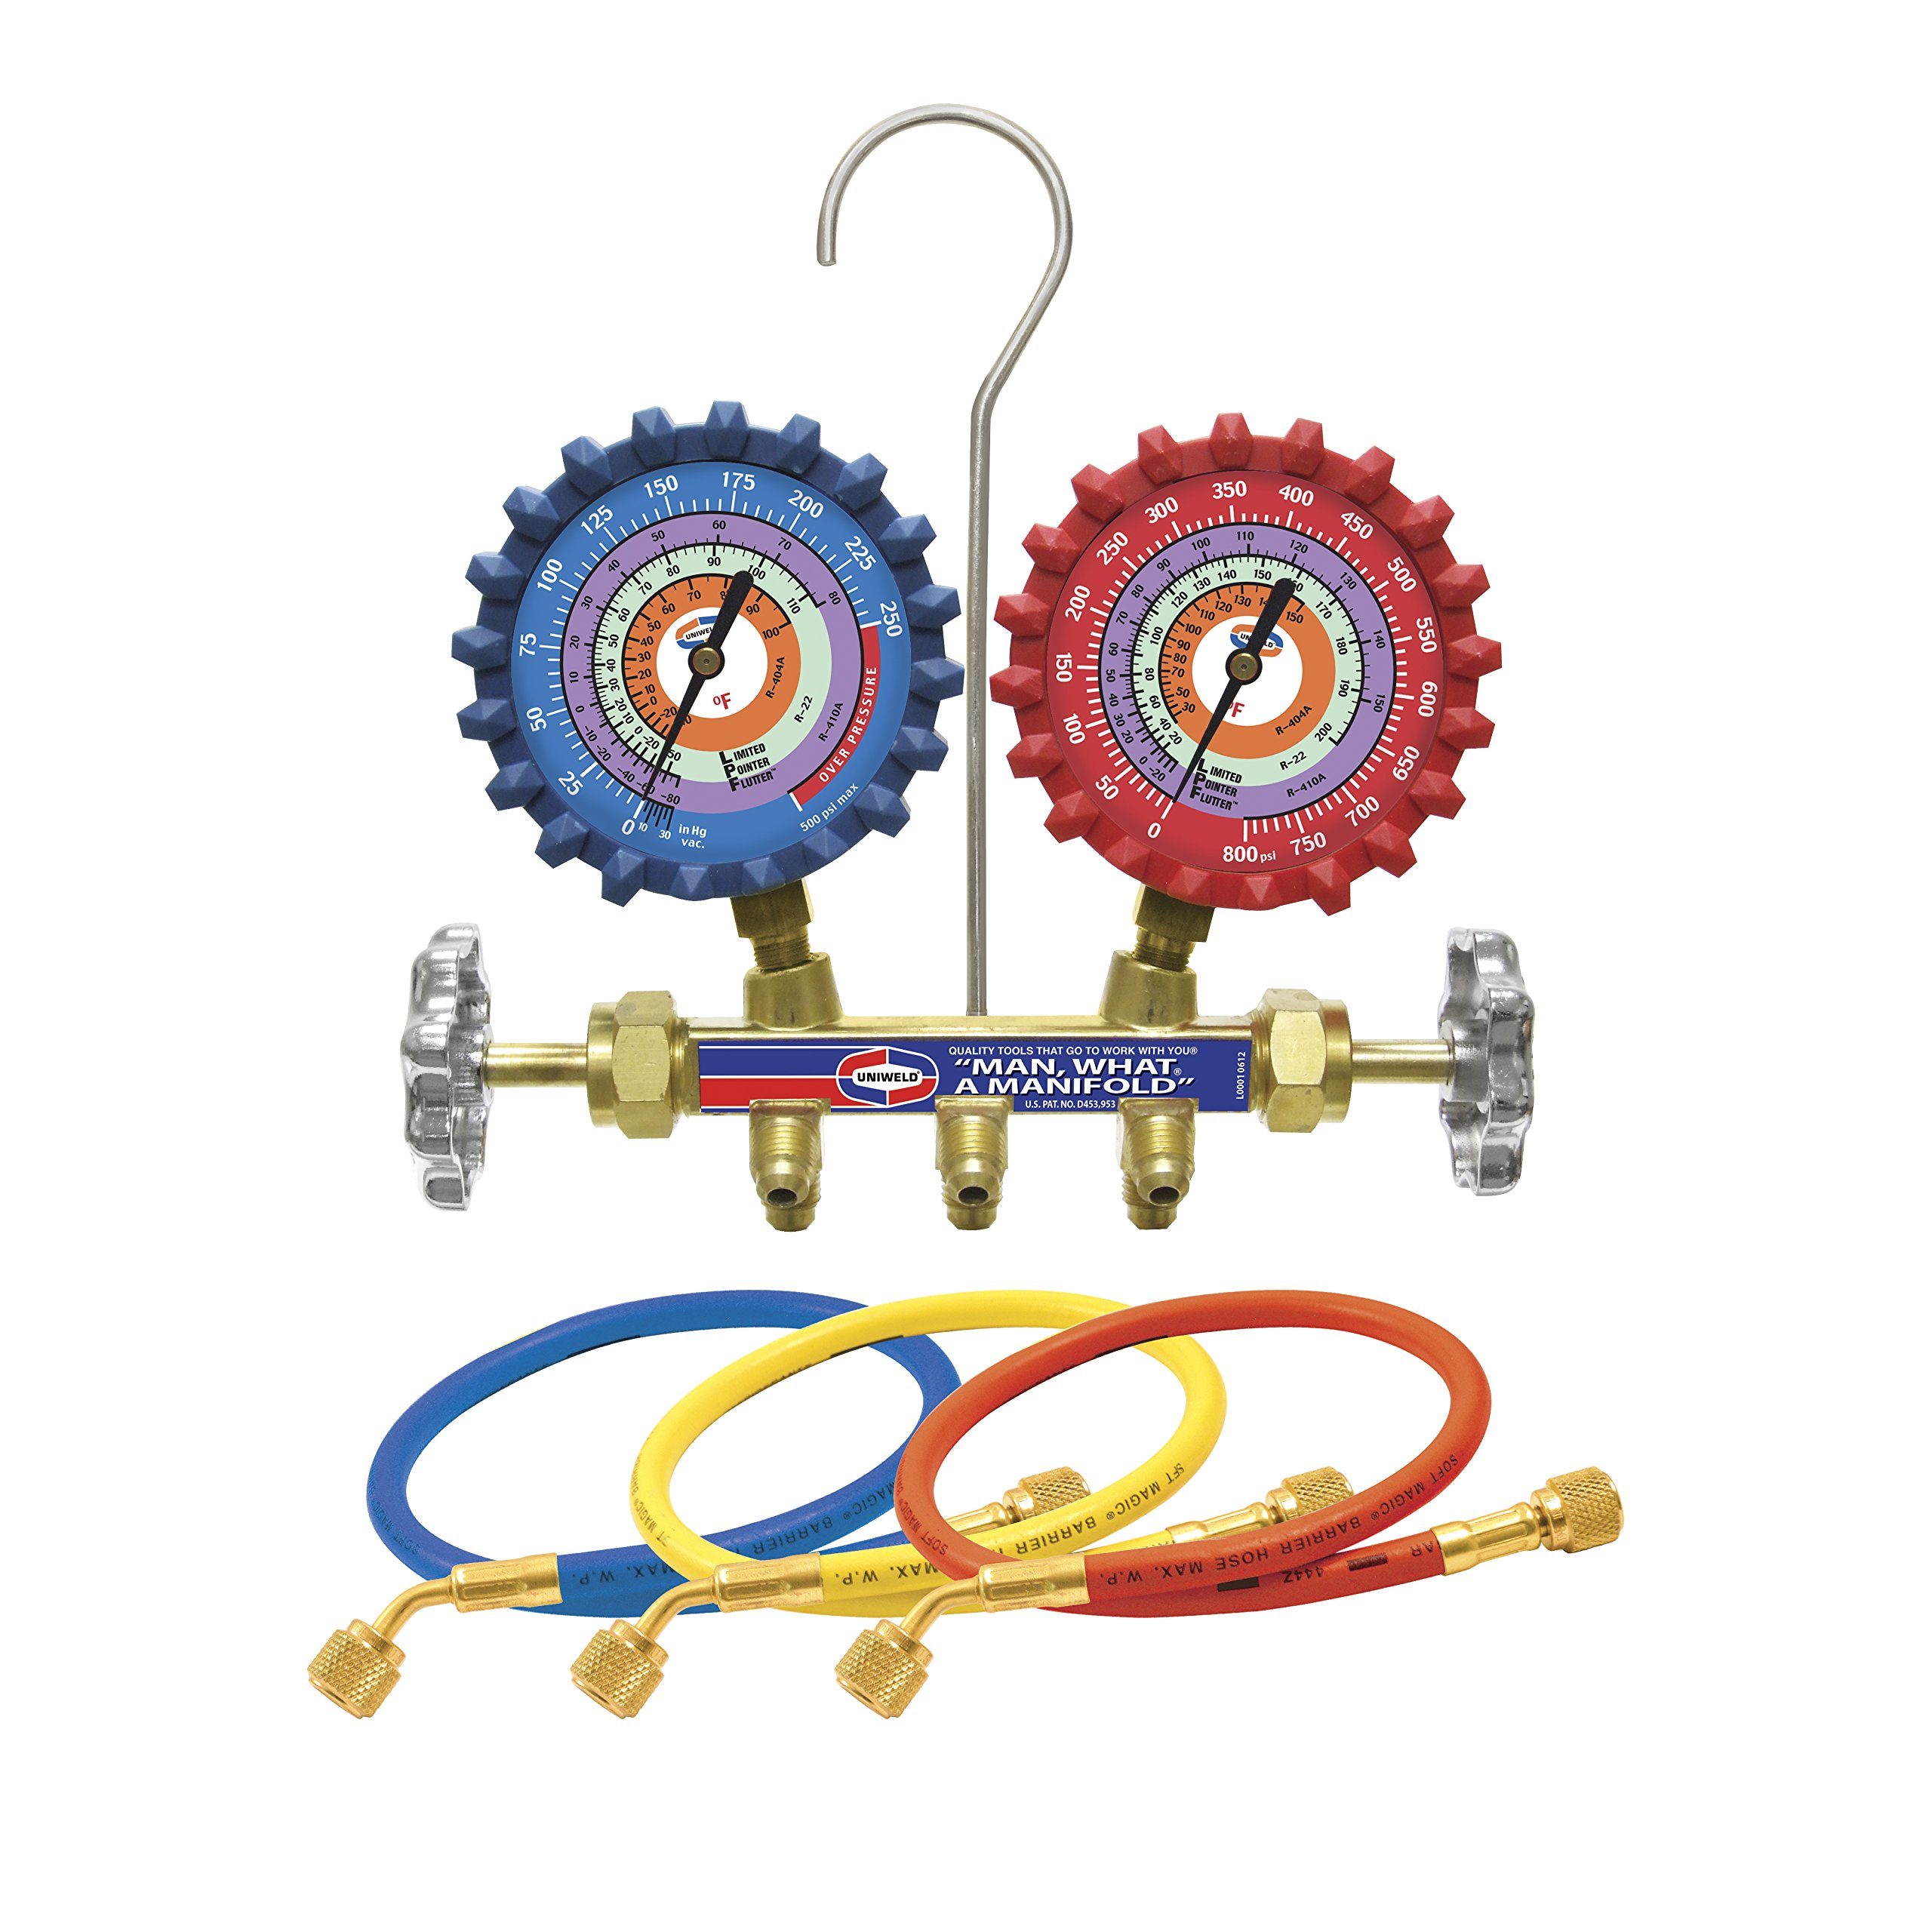 Uniweld QS4L5H 2-Valve Brass Manifold with 5' Hoses by Uniweld